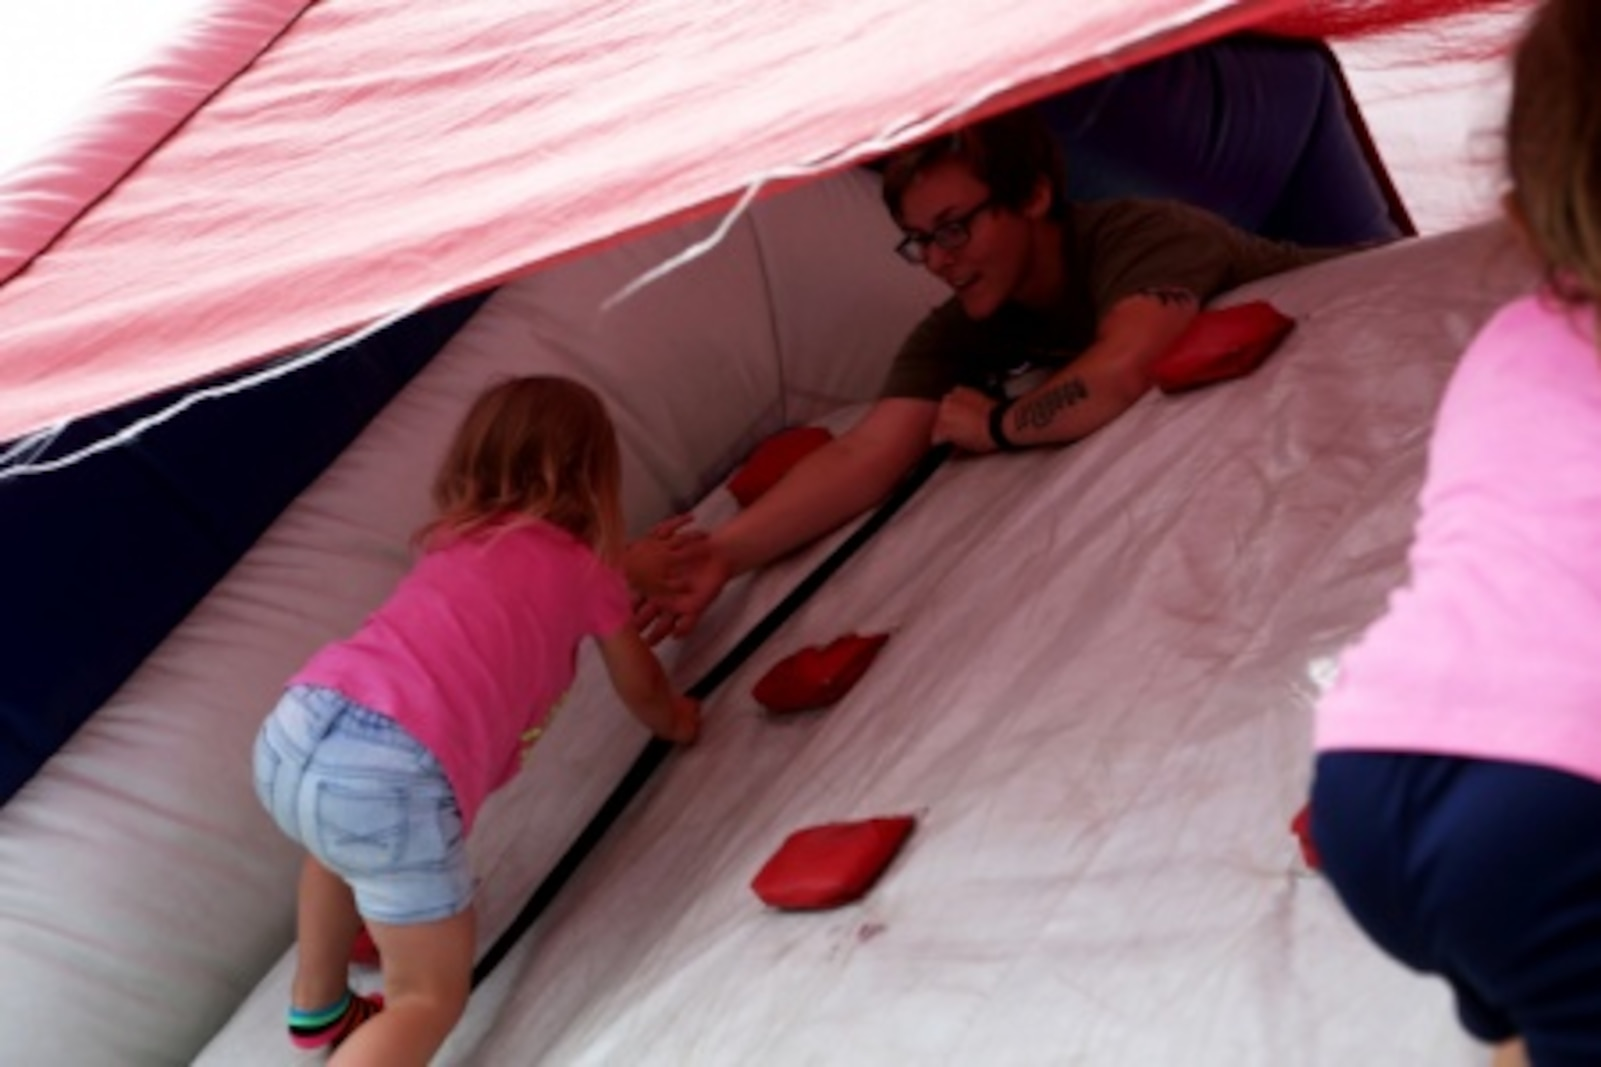 Sergeant Chantelle Imhoff, 7th Engineer Support Battalion, 1st Marine Logistics Group, helps her daughter, Addison, climb a bouncy house rope ladder at a family day celebration for Marines and Sailors of 7th ESB aboard Camp Pendleton, Calif., July 10, 2015. Included in the celebration were bouncy houses and displays that allowed them to look at things like sniper rifles, armored vehicles and Explosive Ordnance Disposal gear.